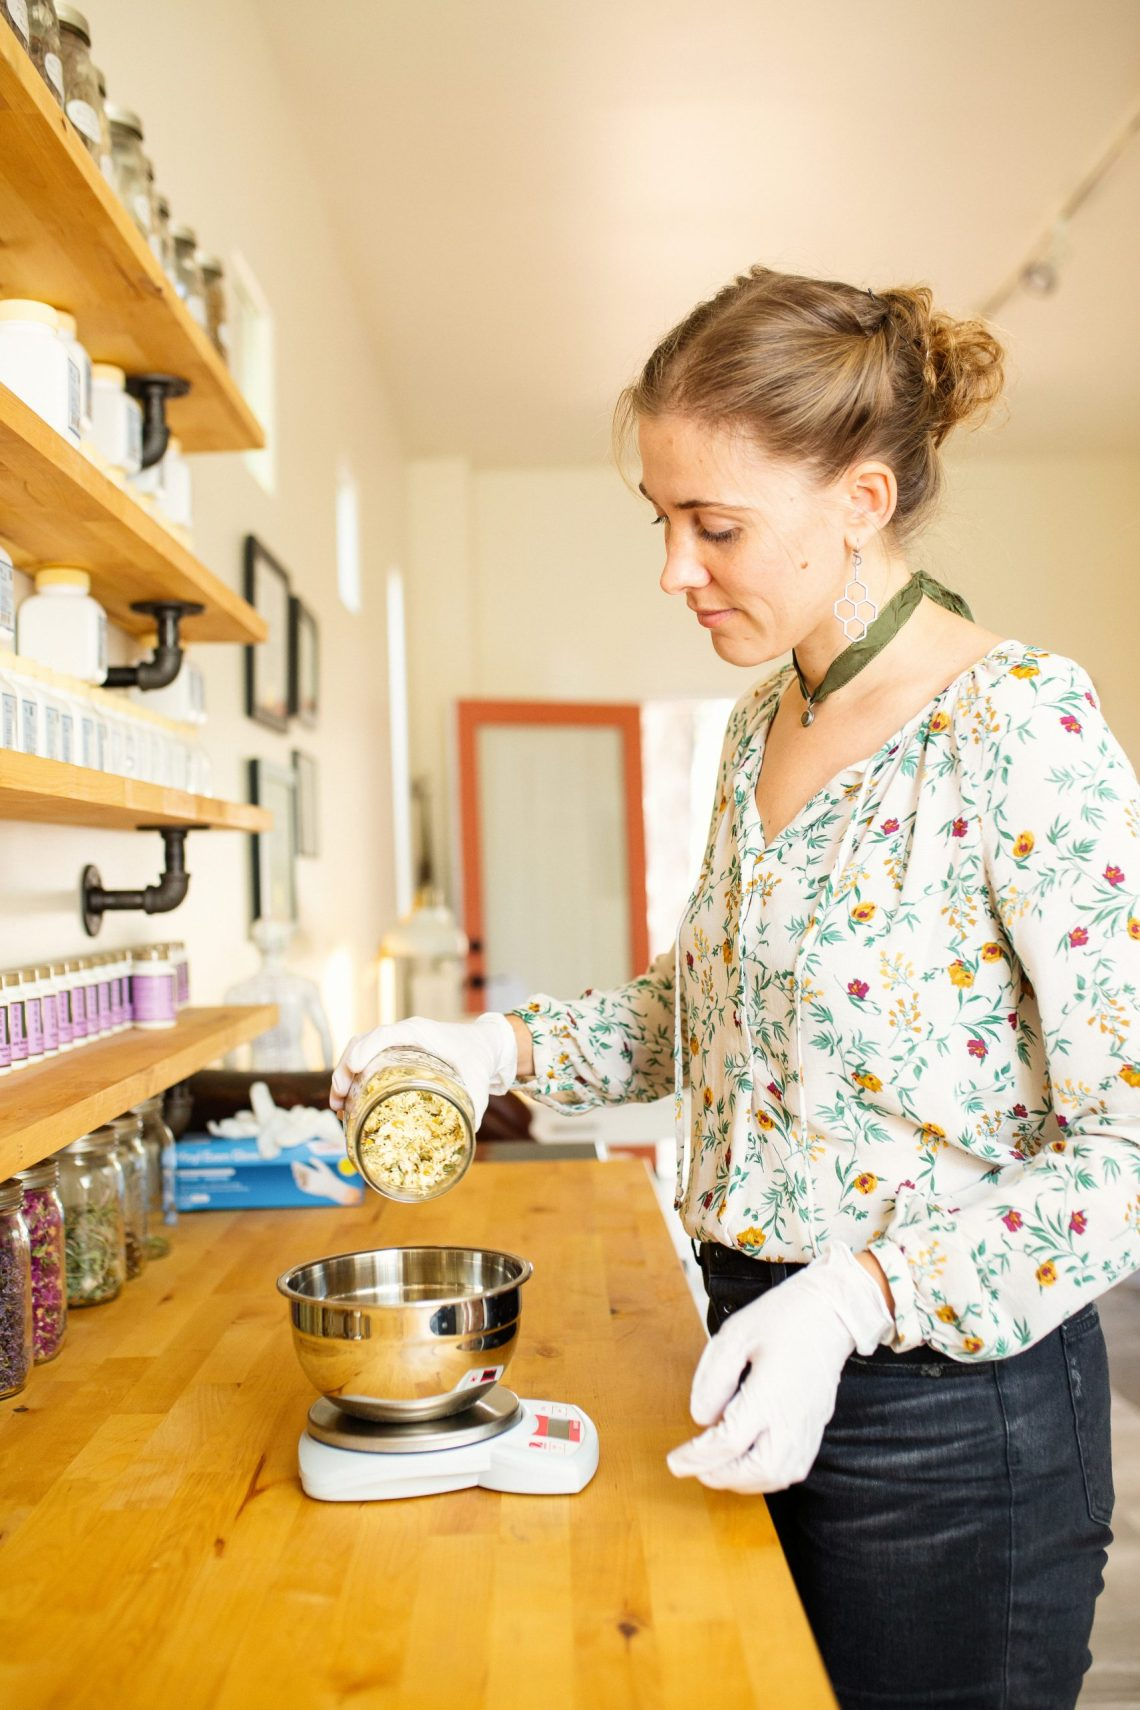 Marketing & Branding photography showing Dr. Clara Wetmore preparing Chinese herbal medicine in her Taos NM clinic. Photography byEllaSophie, Professional Commercial photographer for women owned businesses.